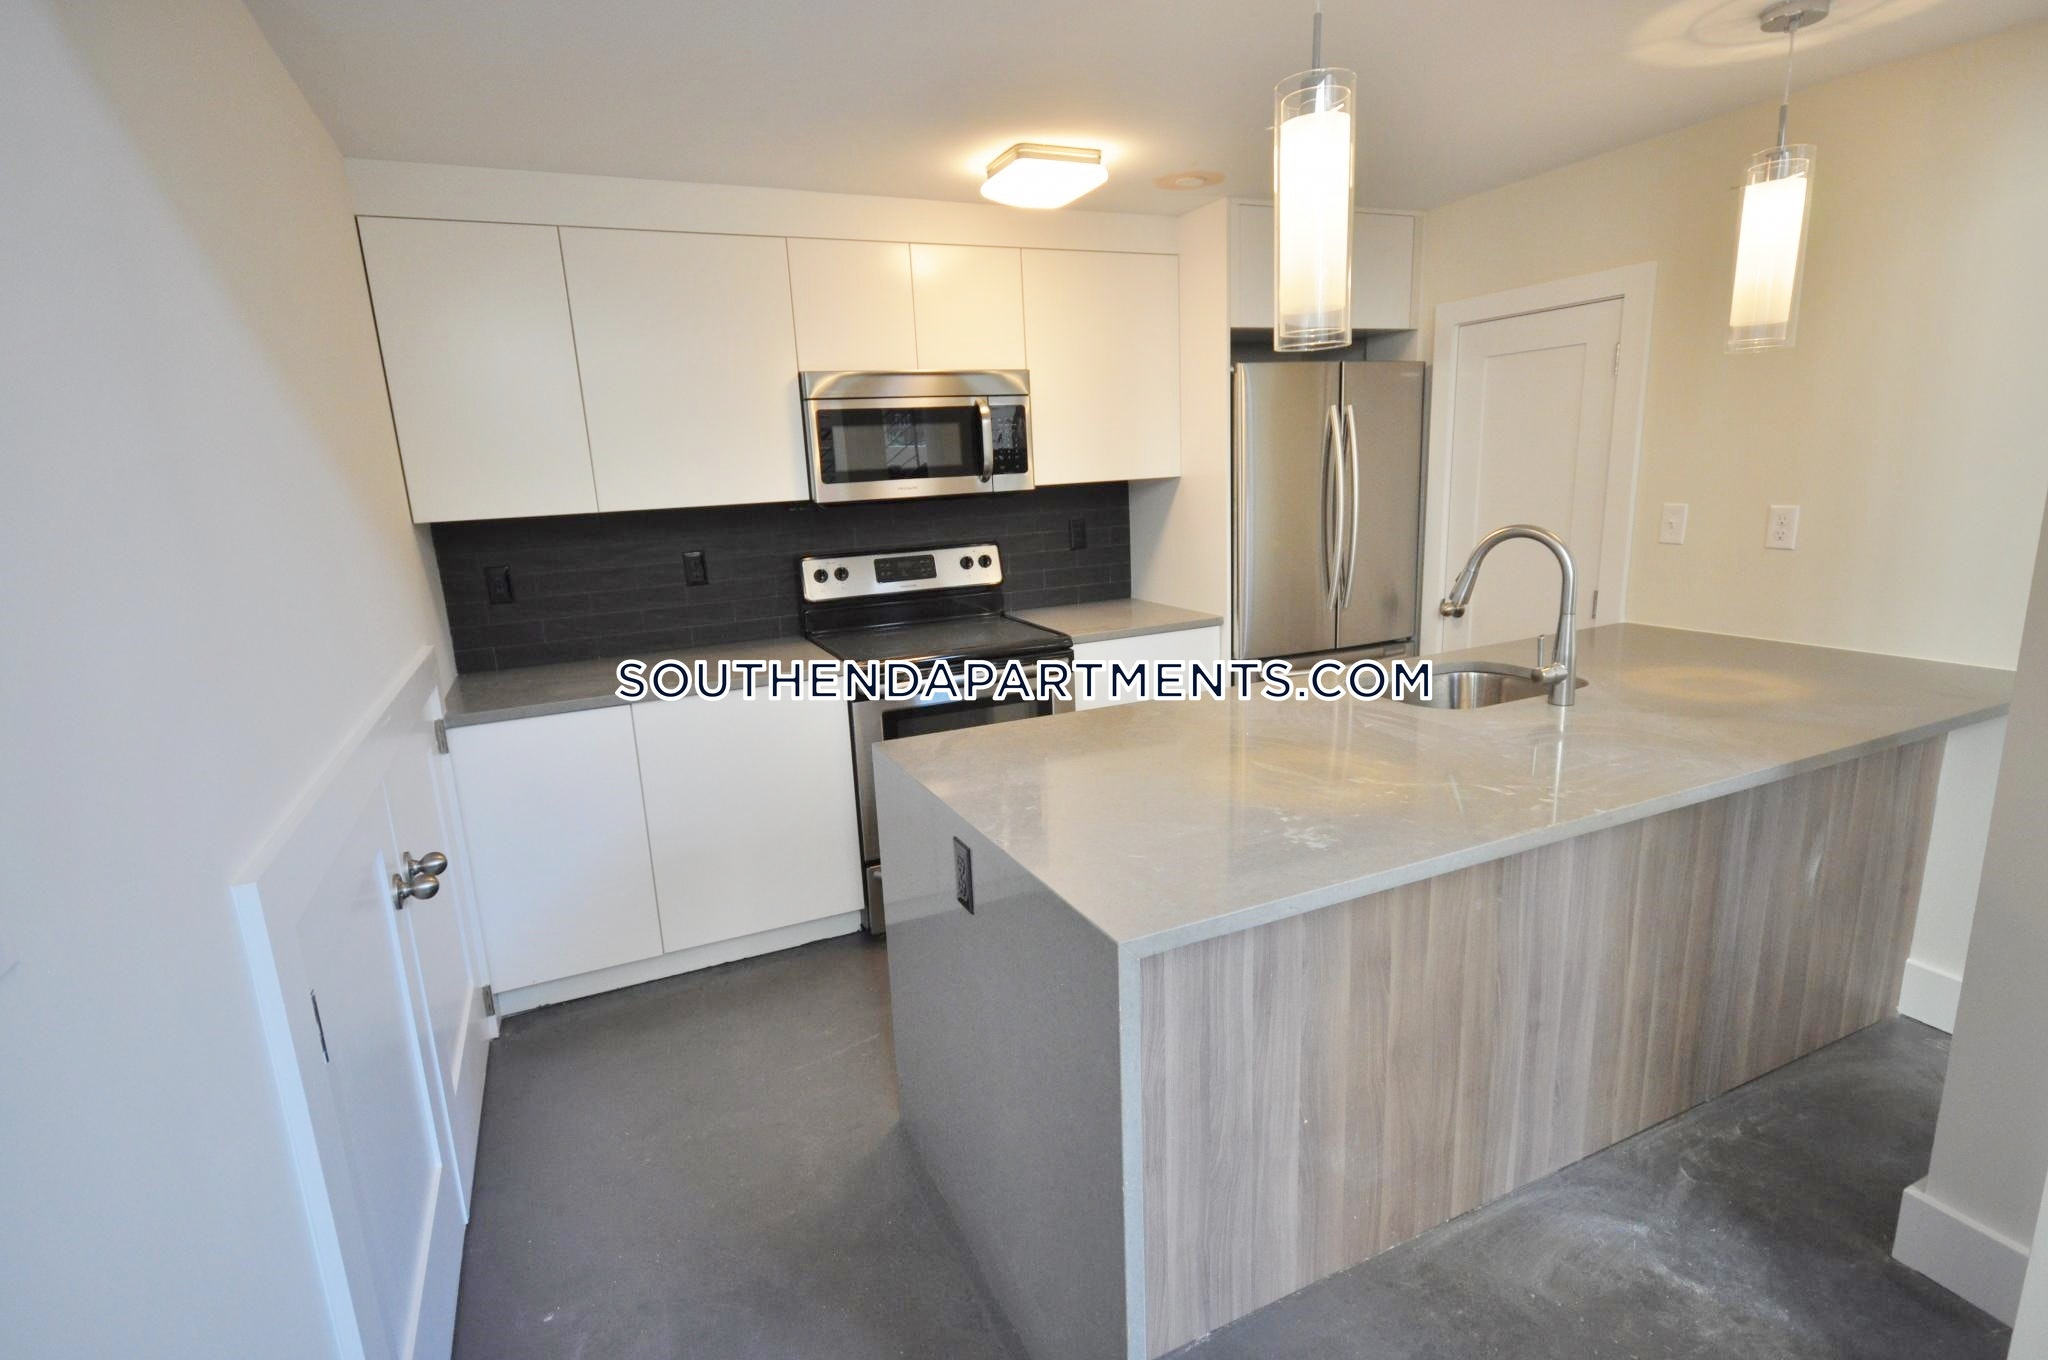 Fine South End 3 Bedroom Apartment For Rent 2 Baths Boston 4 450 Beutiful Home Inspiration Ommitmahrainfo